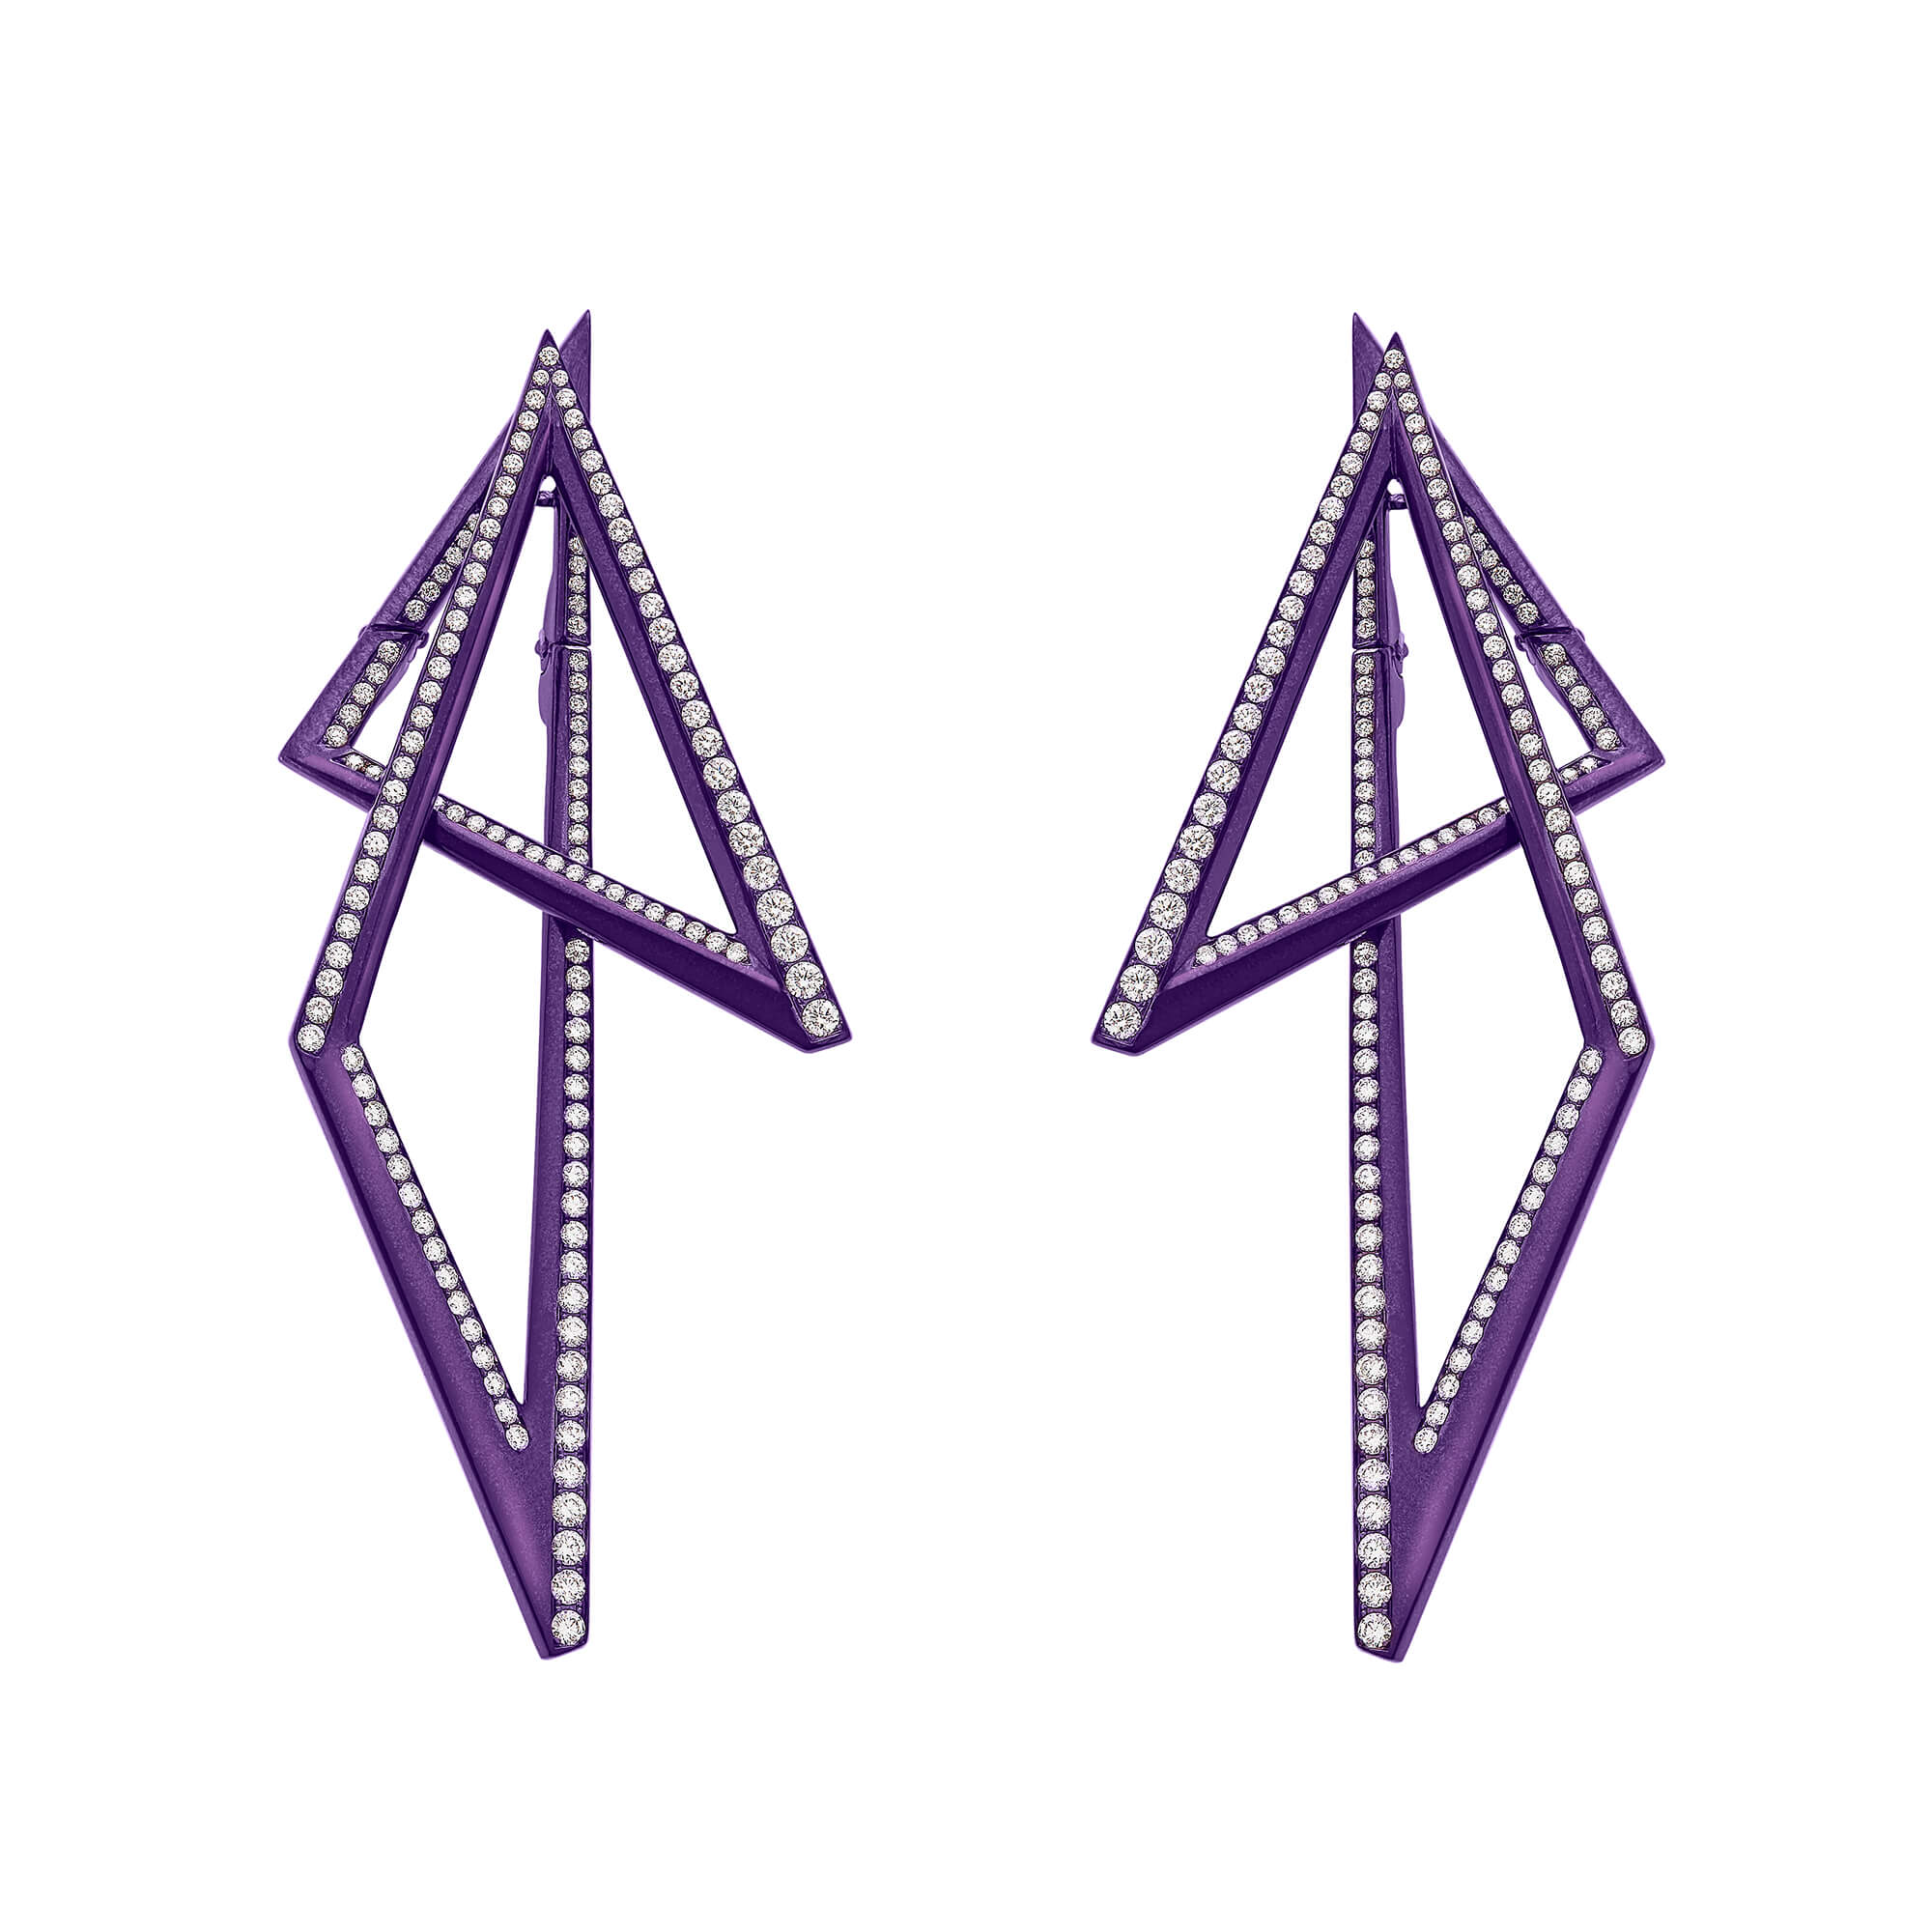 Vertigo Infinity Earrings | Vertigo